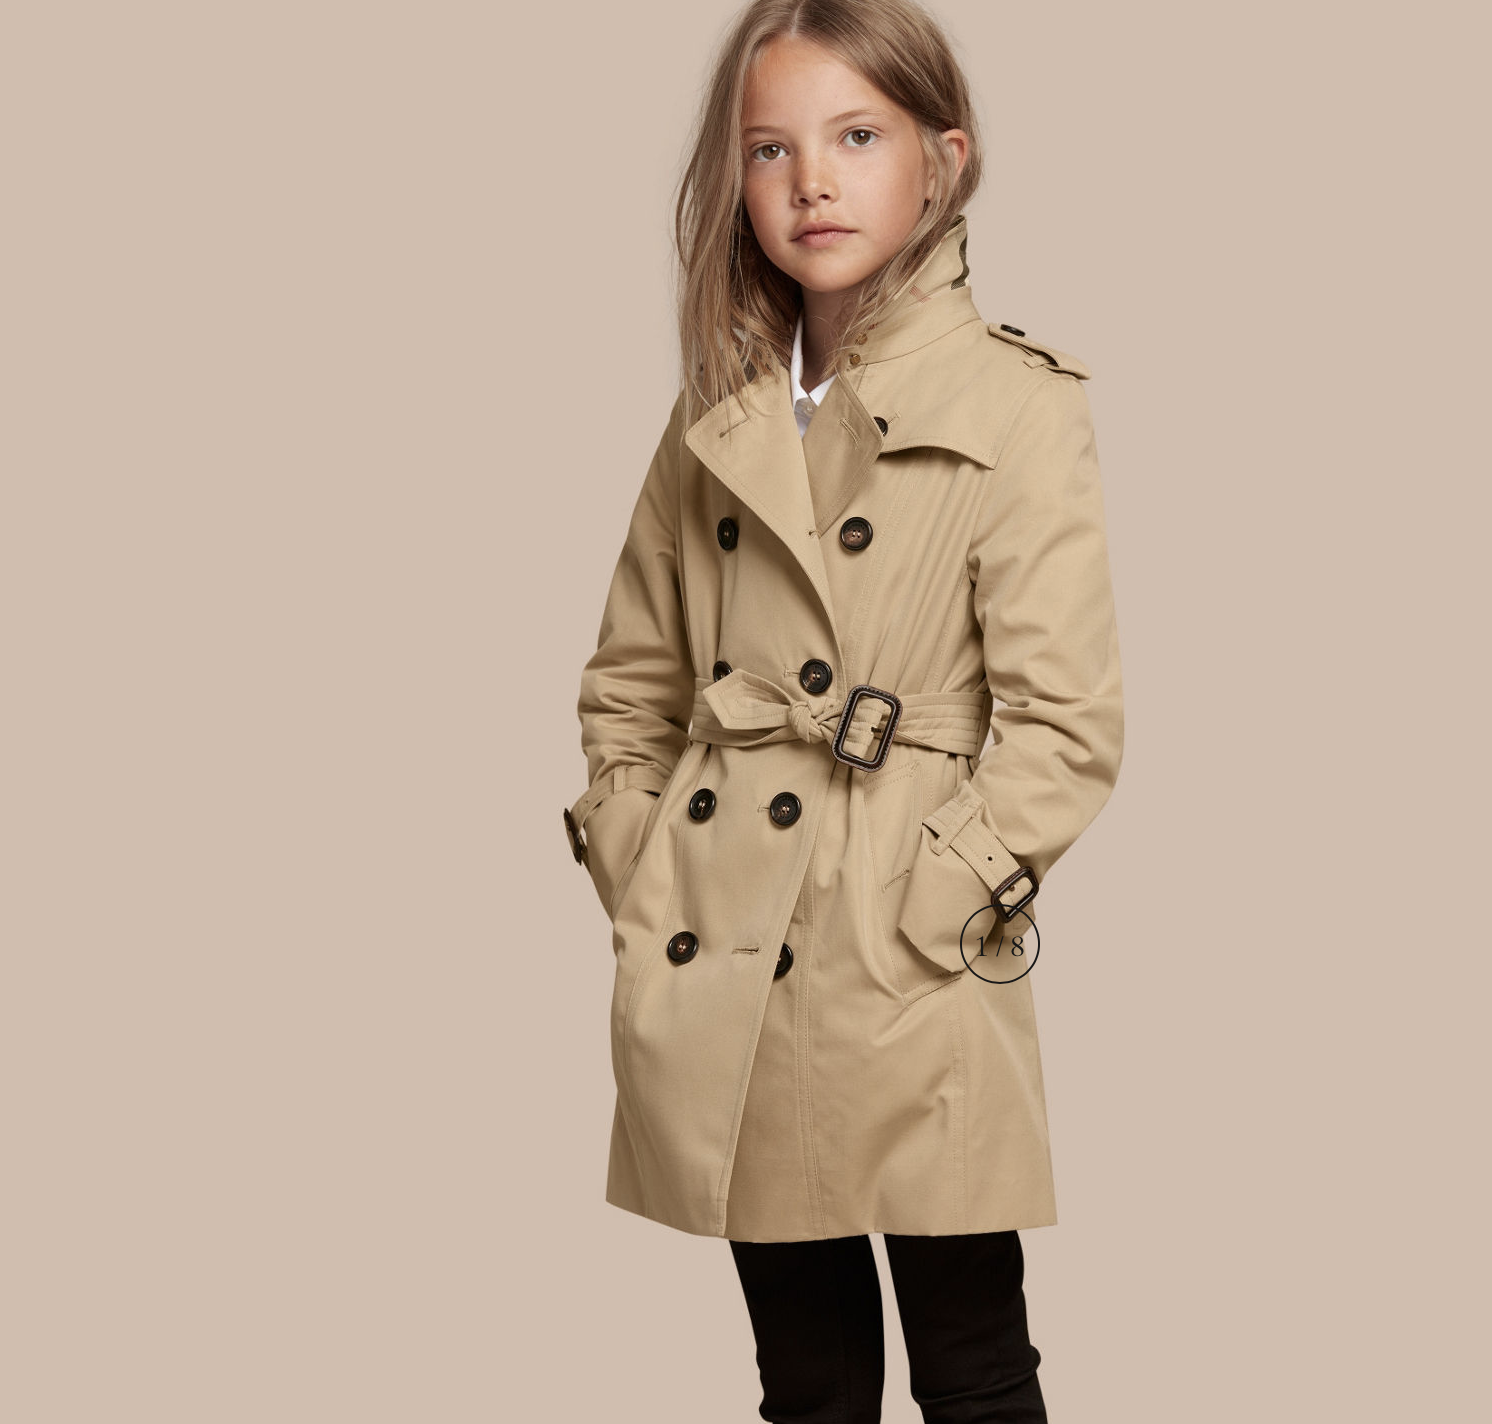 Burberry Trench Coat 2016